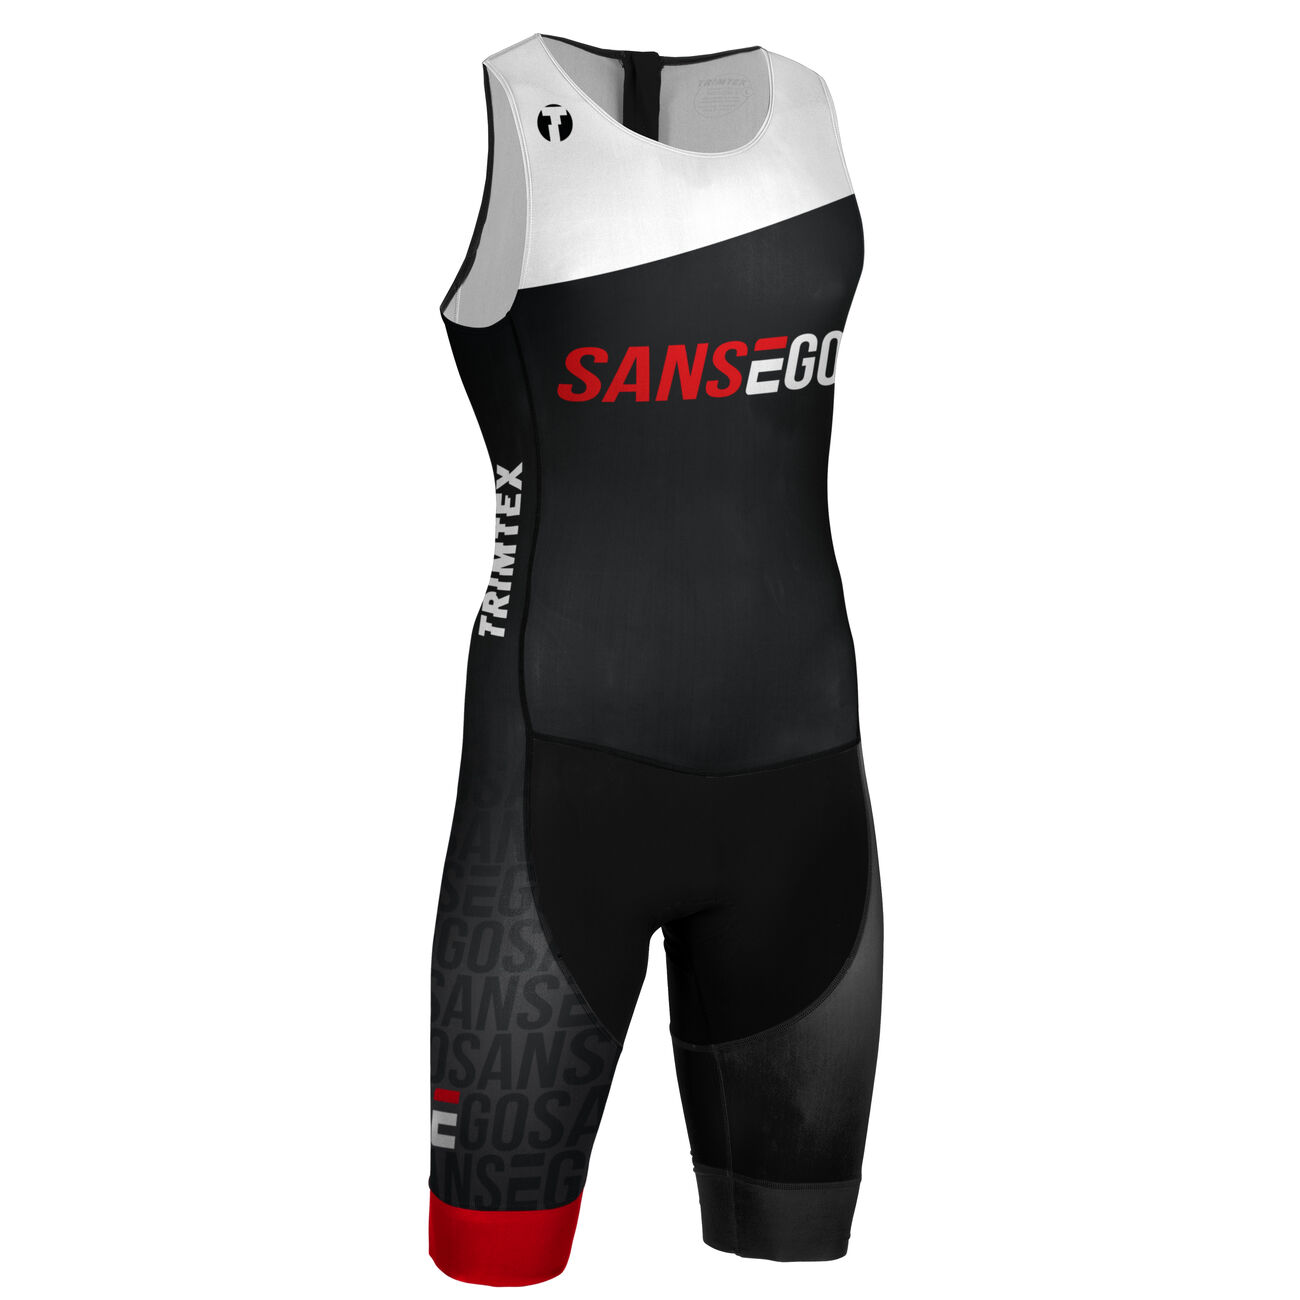 Sansego Torq skinsuit men`s